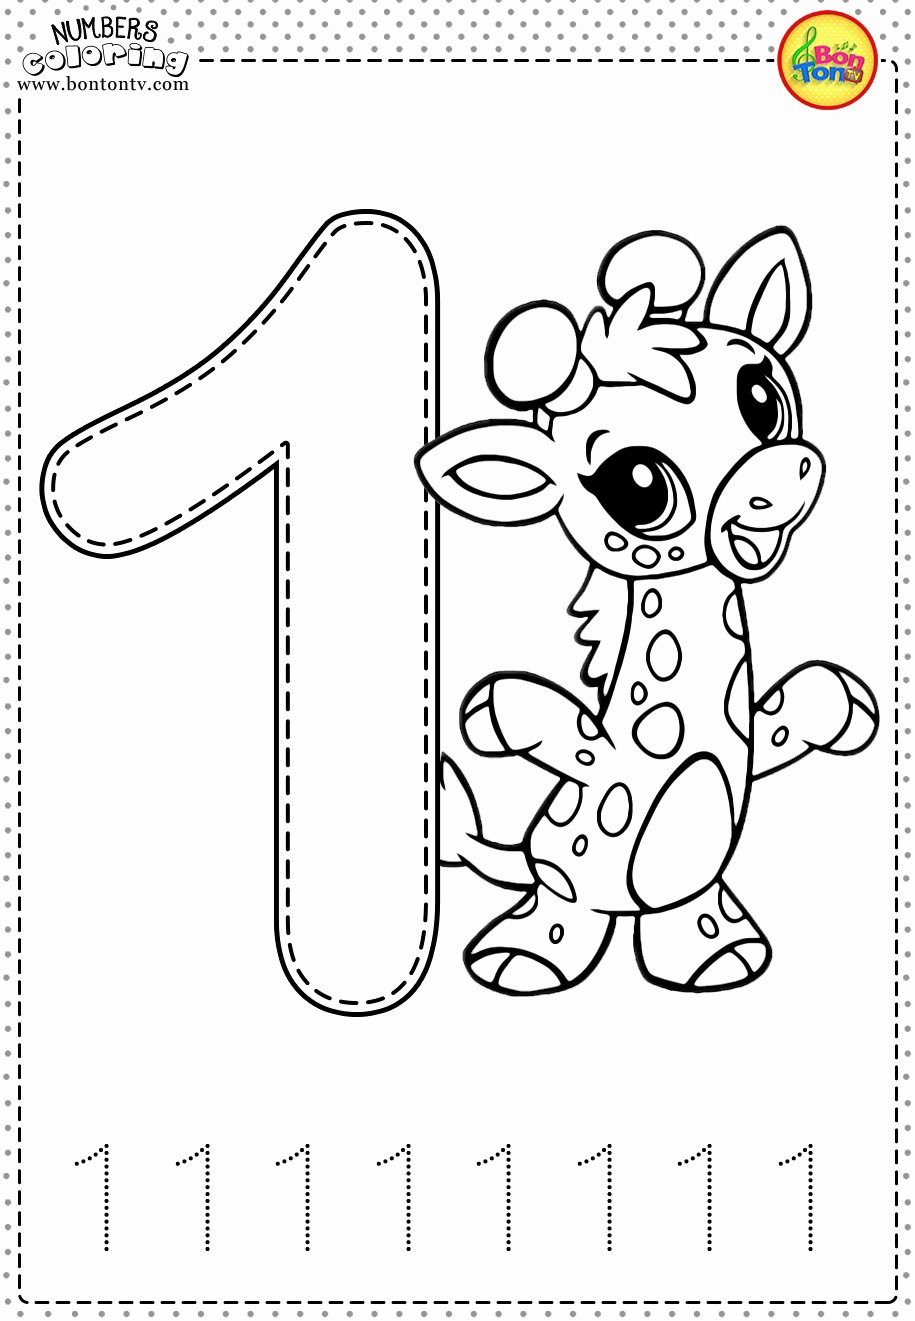 Worksheets for Preschoolers About Numbers Inspirational Worksheet Learning Numbersorksheets Printableorksheet